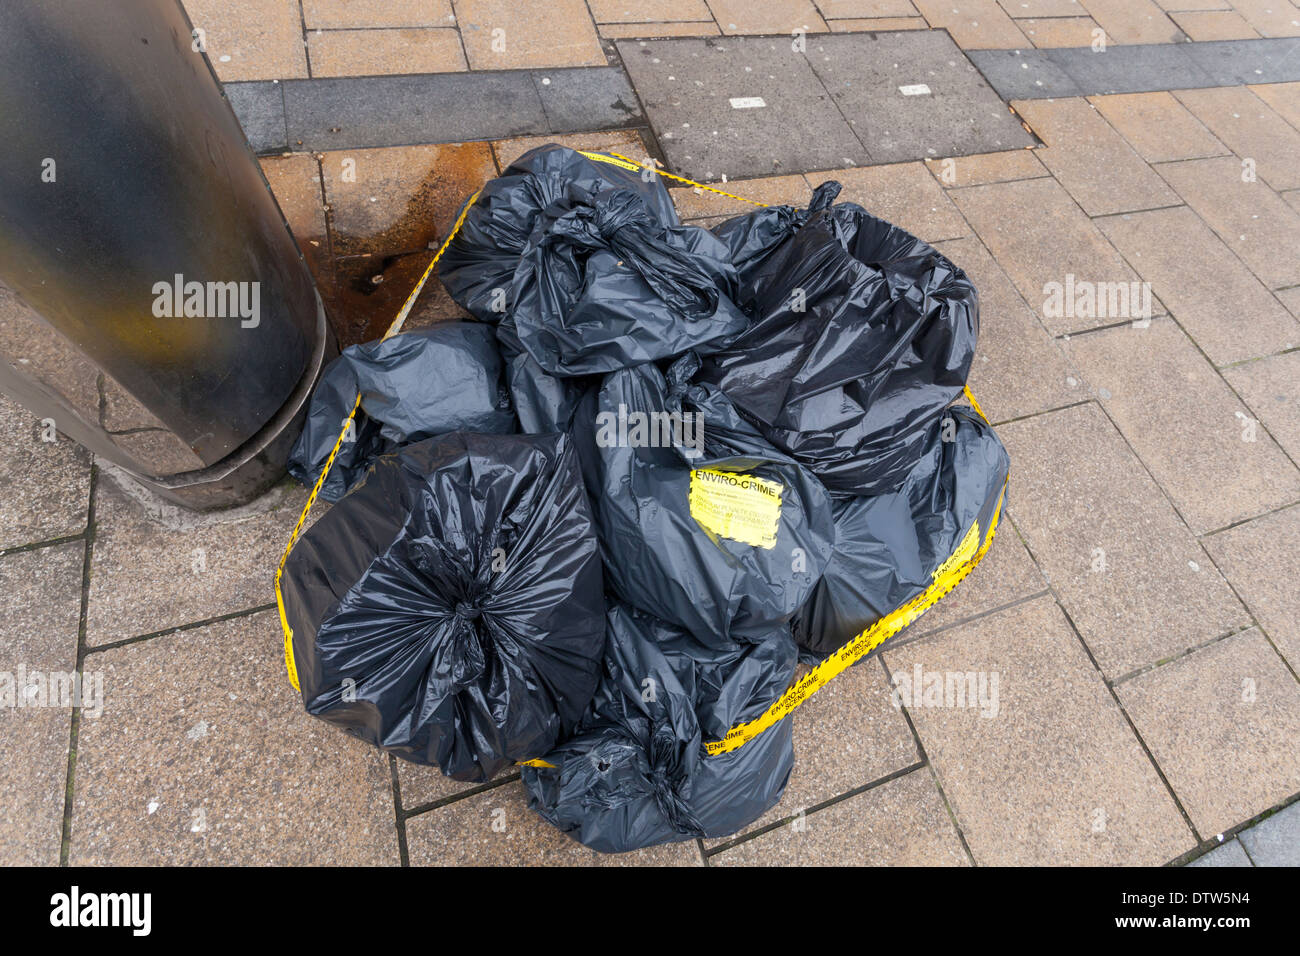 Environmental crime scene. Fly tipping or illegal dumping of waste. Bags of rubbish left on a street in Sheffield city centre, England, UK - Stock Image